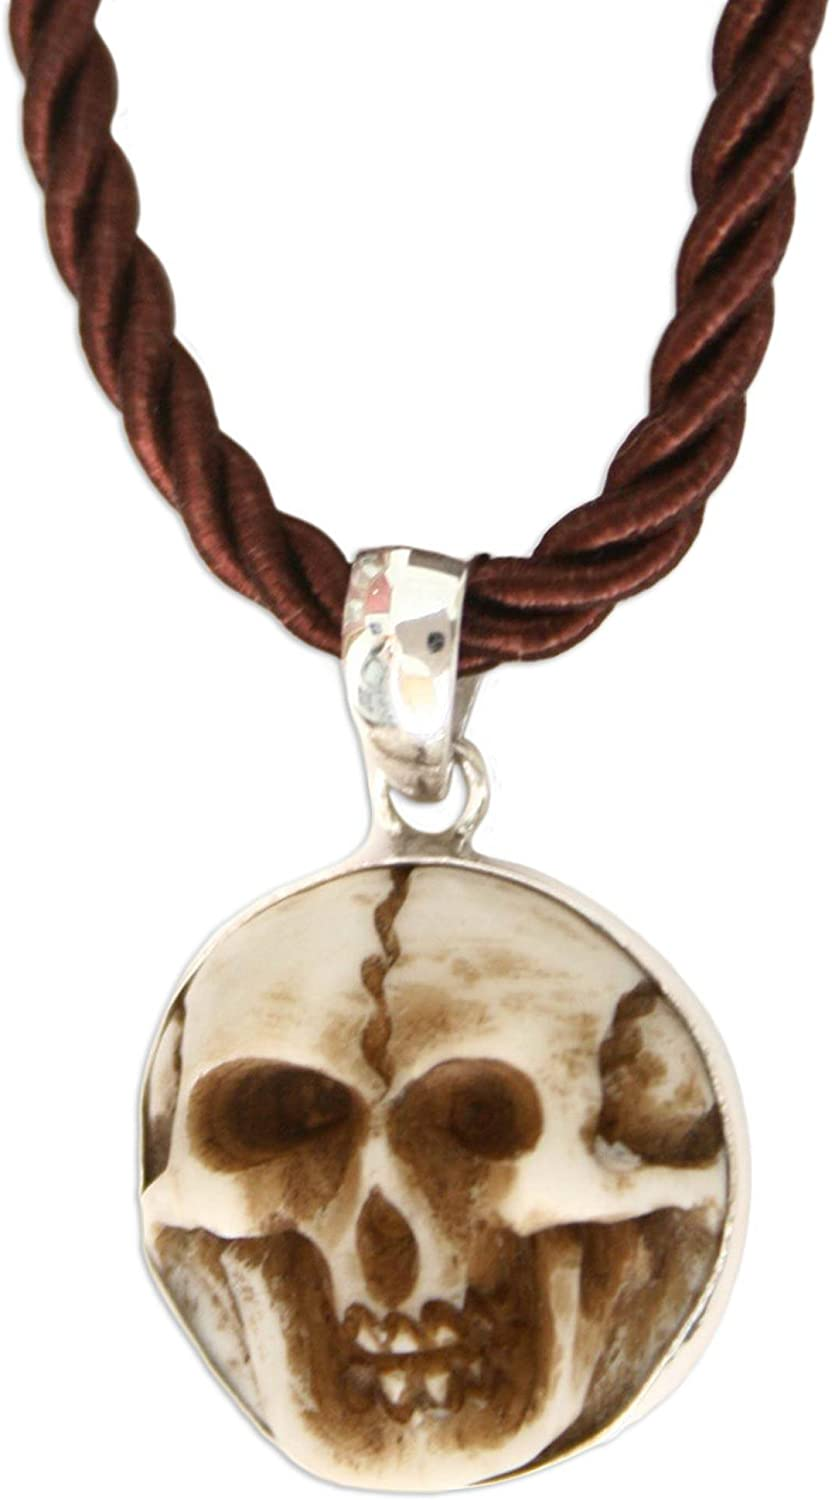 Amazon Com Novica Artisan Hand Carved Skull Pendant Necklace On Silk Cord Aged Immortal Smile 17 Pendant Necklaces Jewelry